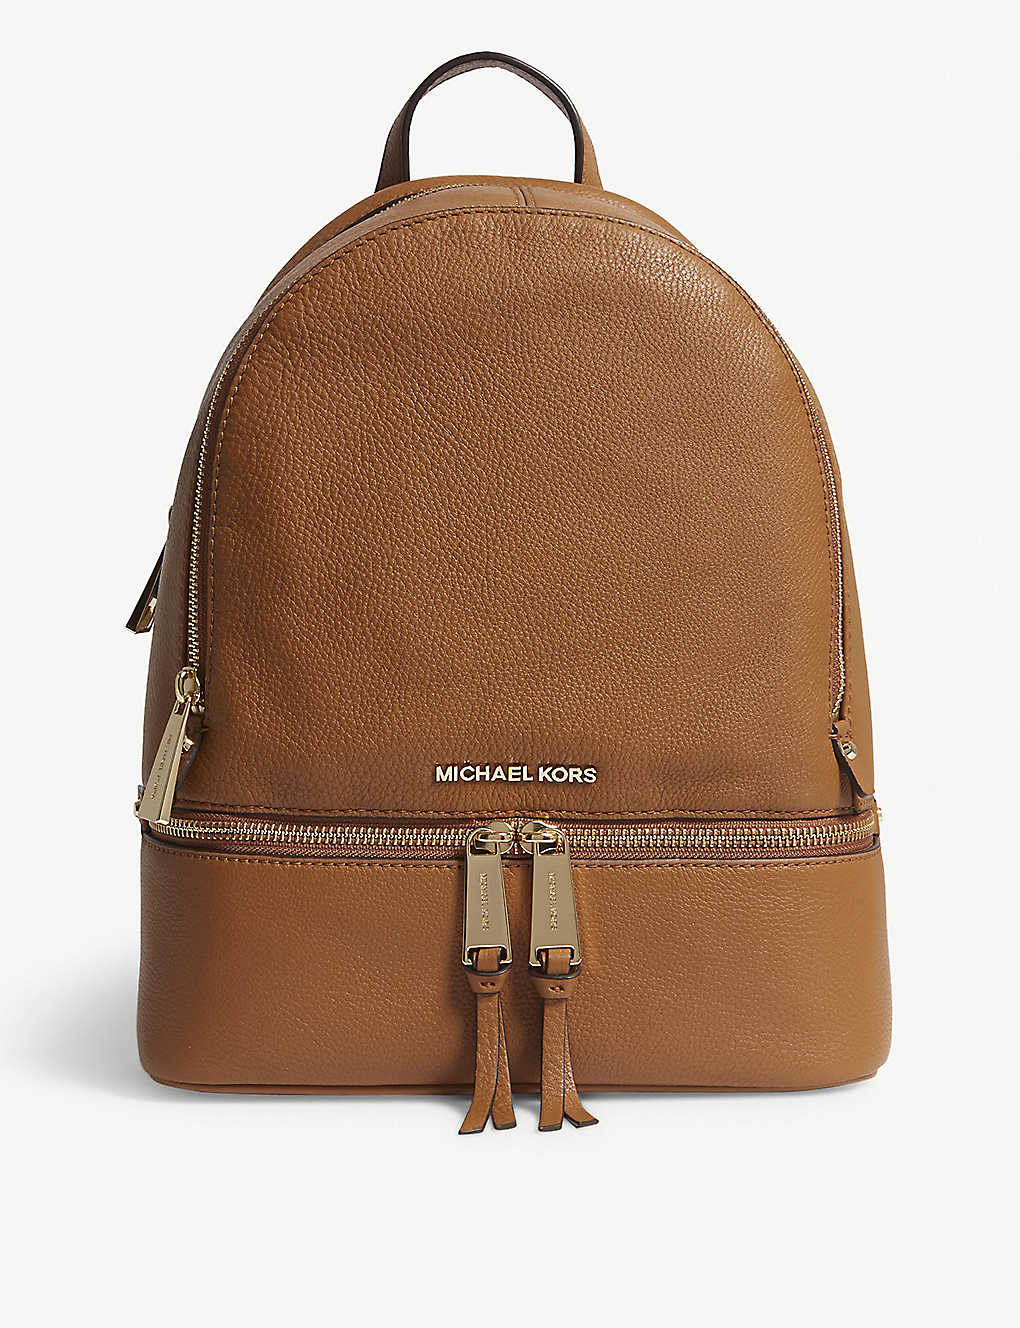 0bdd1ec1dab6 MICHAEL MICHAEL KORS - Rhea medium leather backpack | Selfridges.com